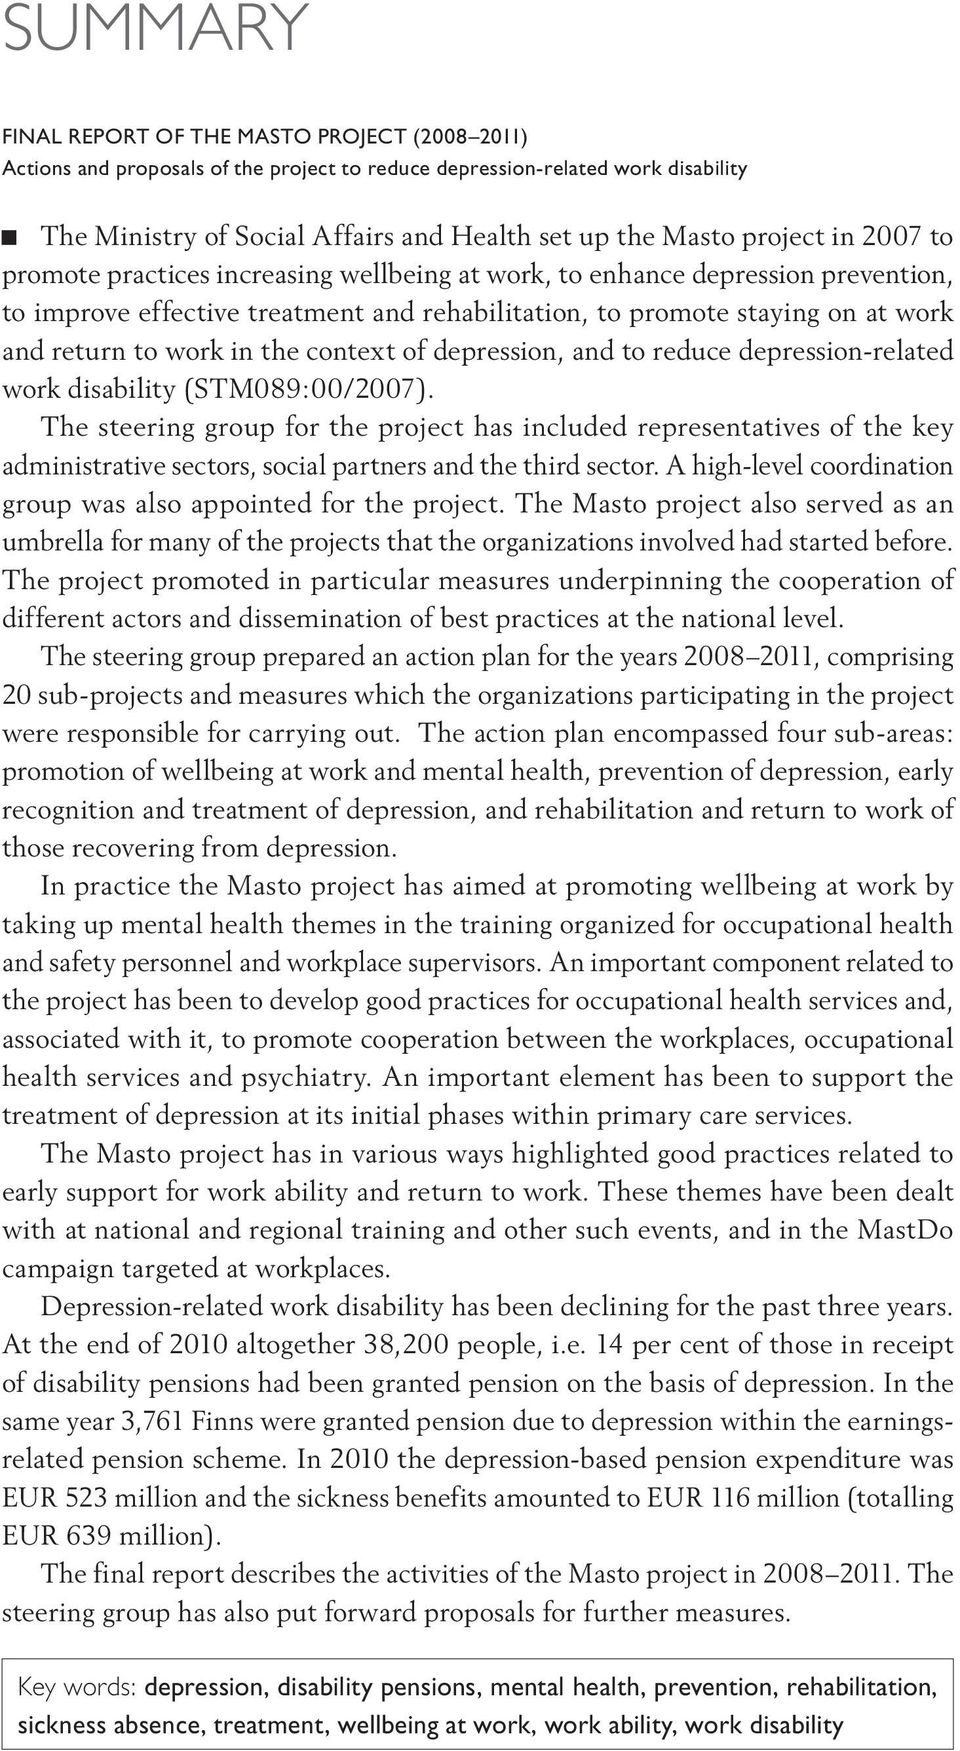 work in the context of depression, and to reduce depression-related work disability (STM089:00/2007).